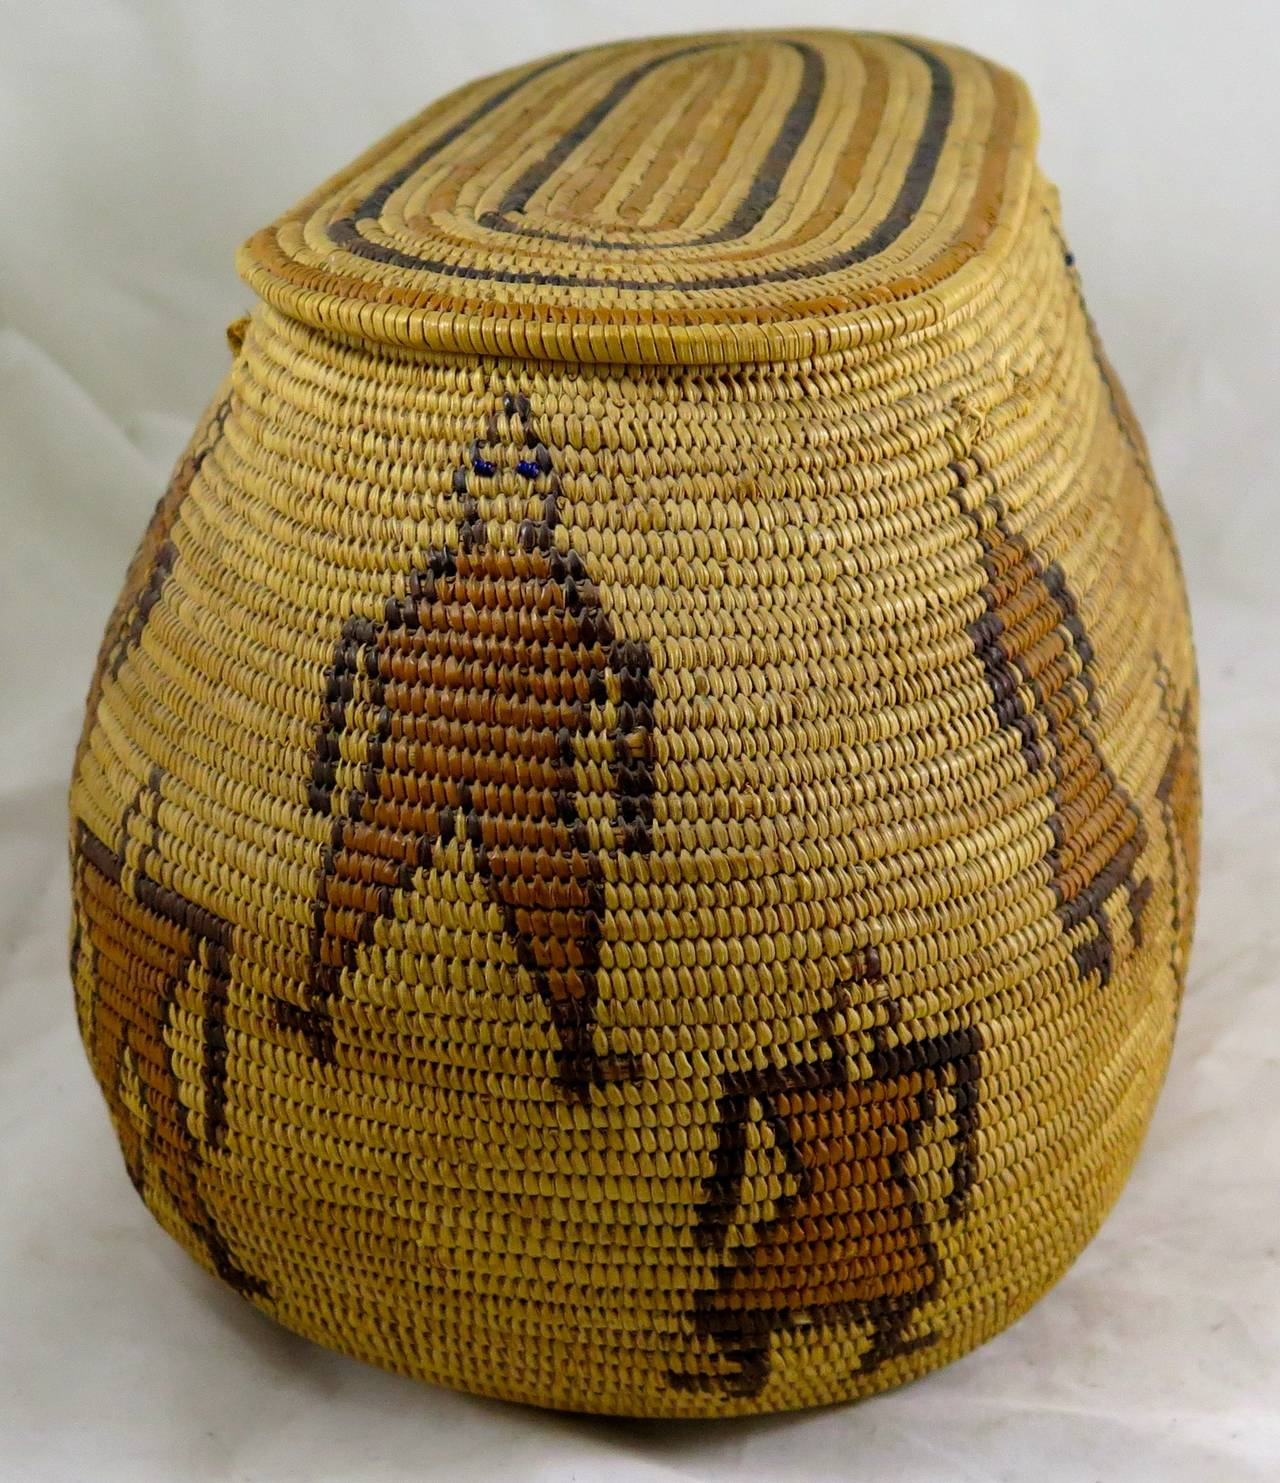 Rare 29 Palms Chemehuevi Native American Basket, Early 20th Century 2